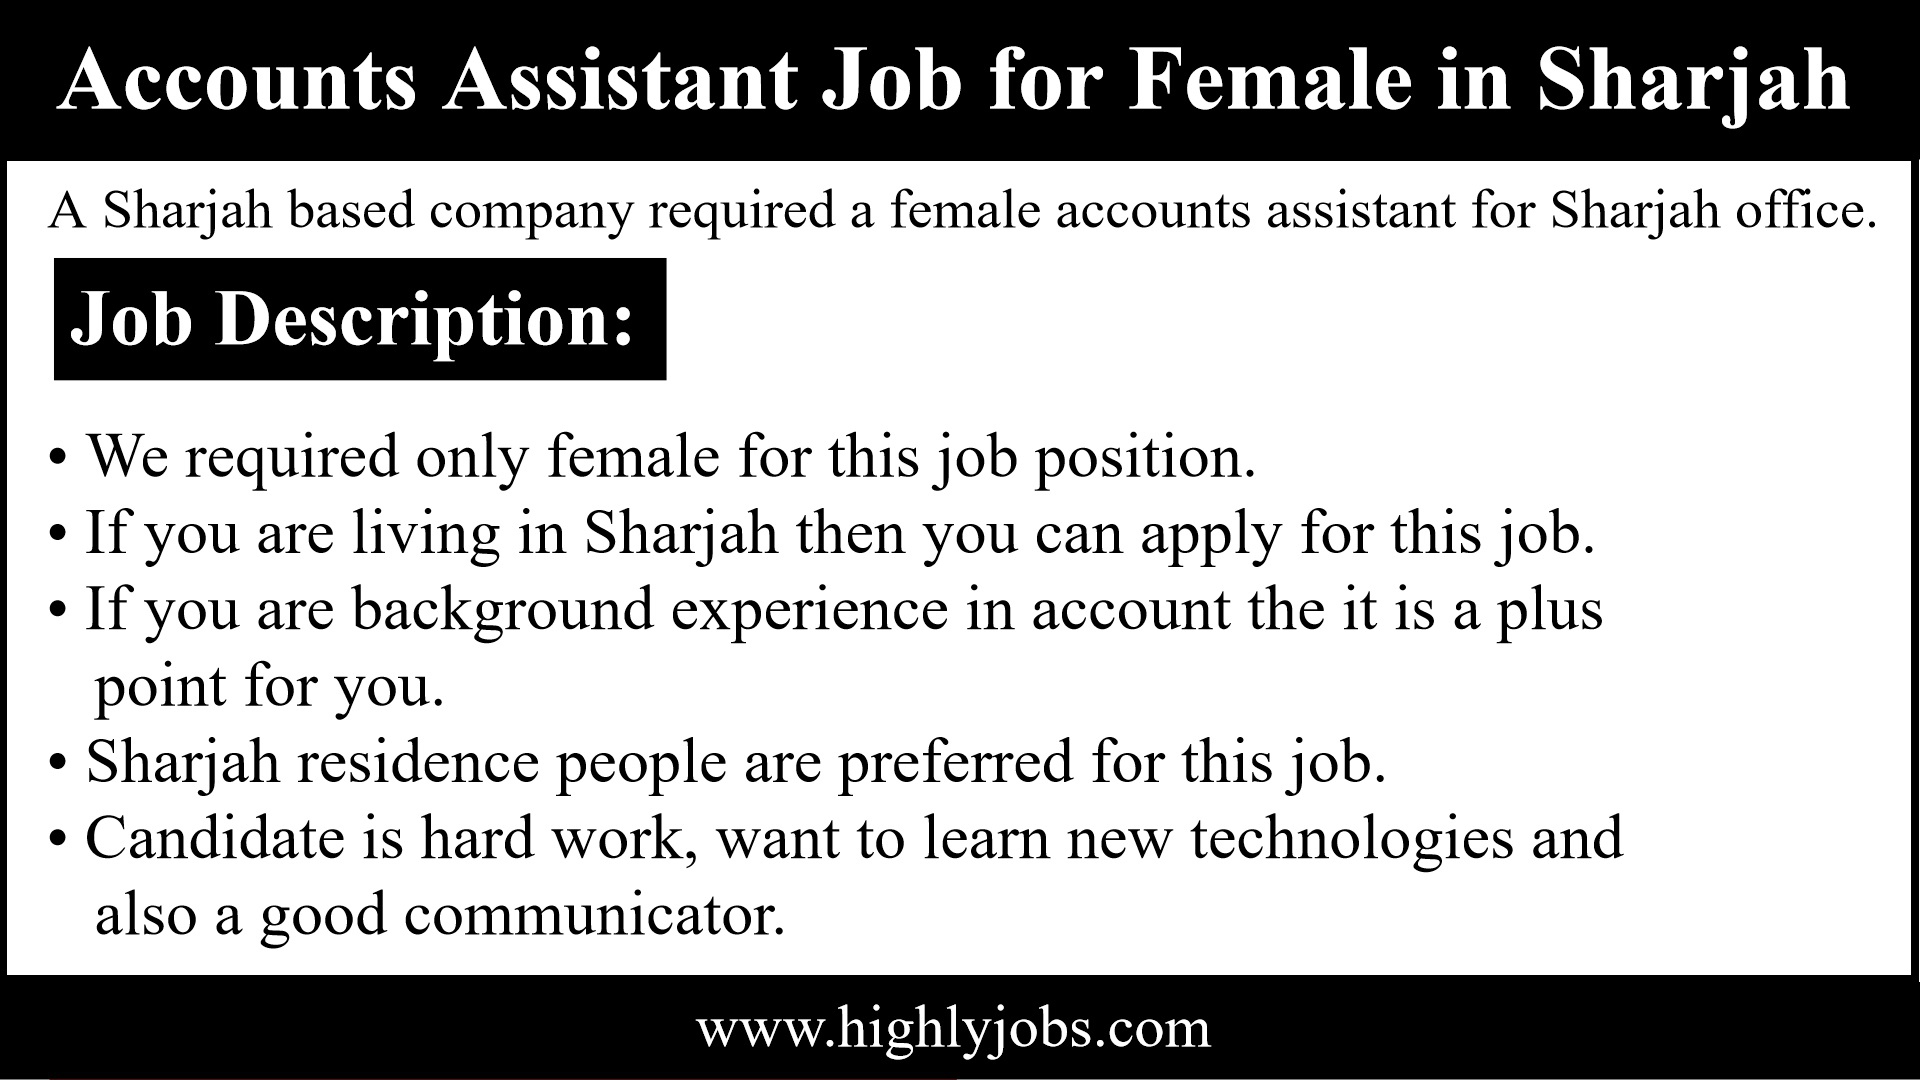 Female Account Assistant Job In Sharjah | Highlyjobs